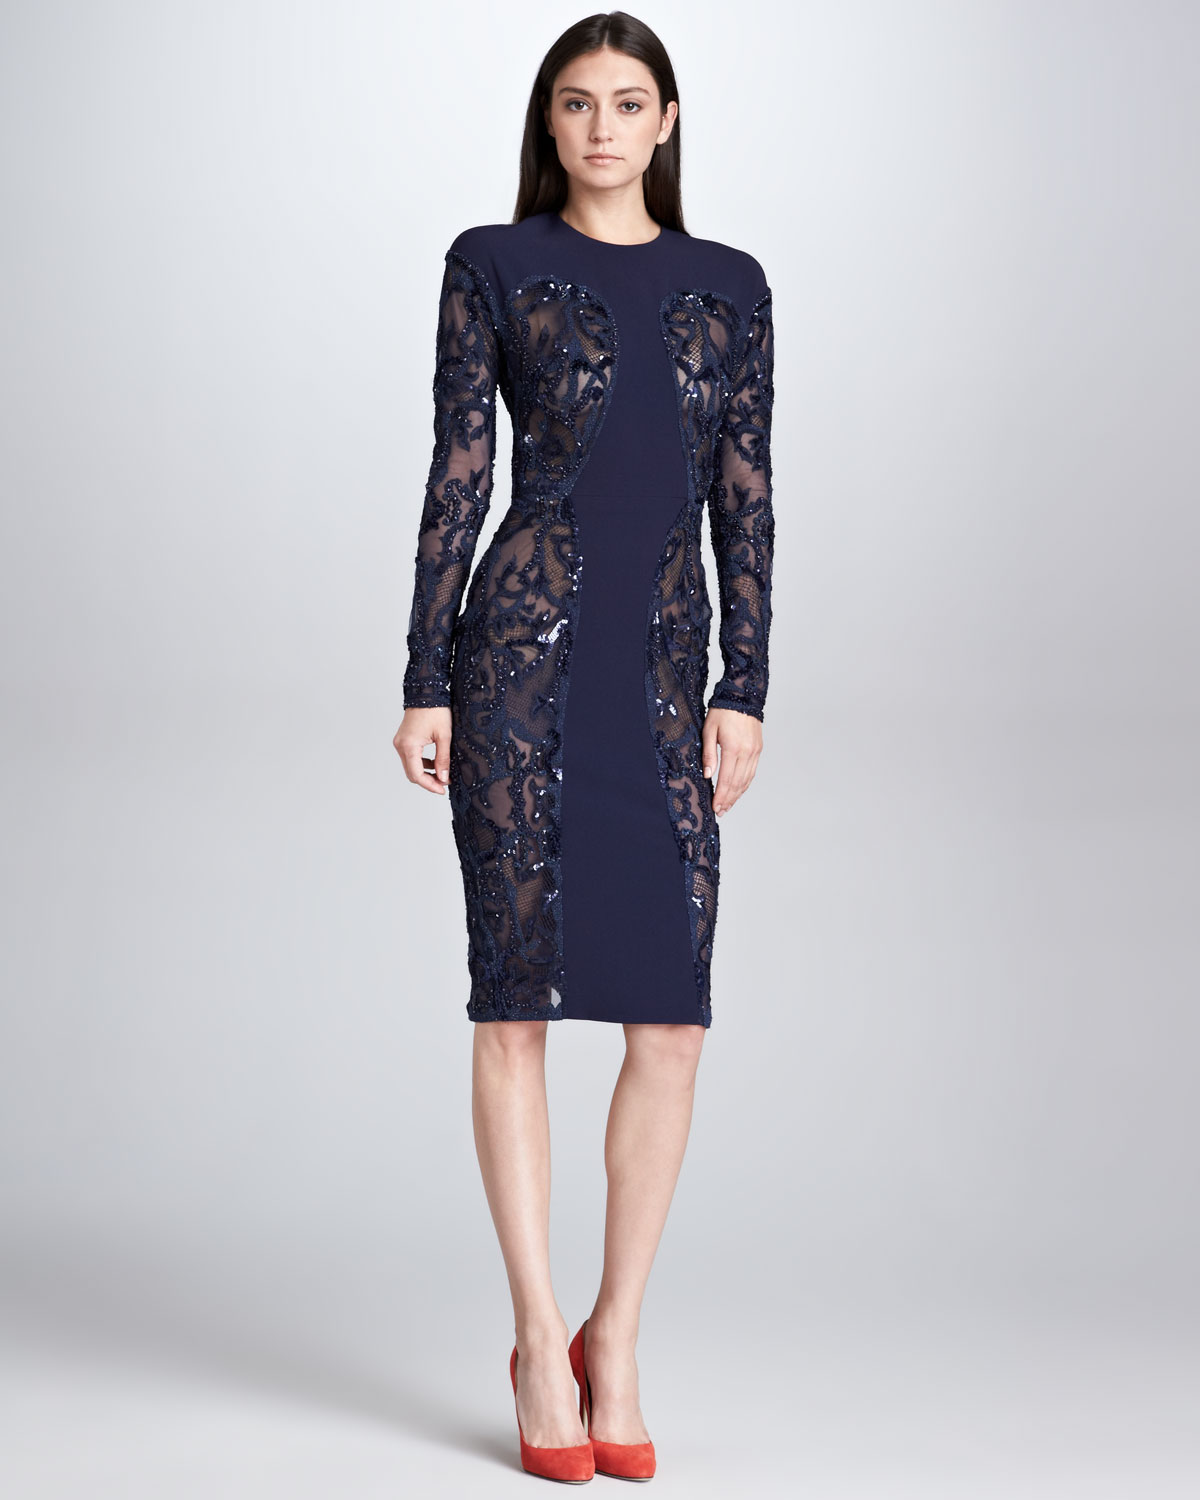 Lyst - Elie Saab Sequined Sheerpanel Dress Navy in Blue